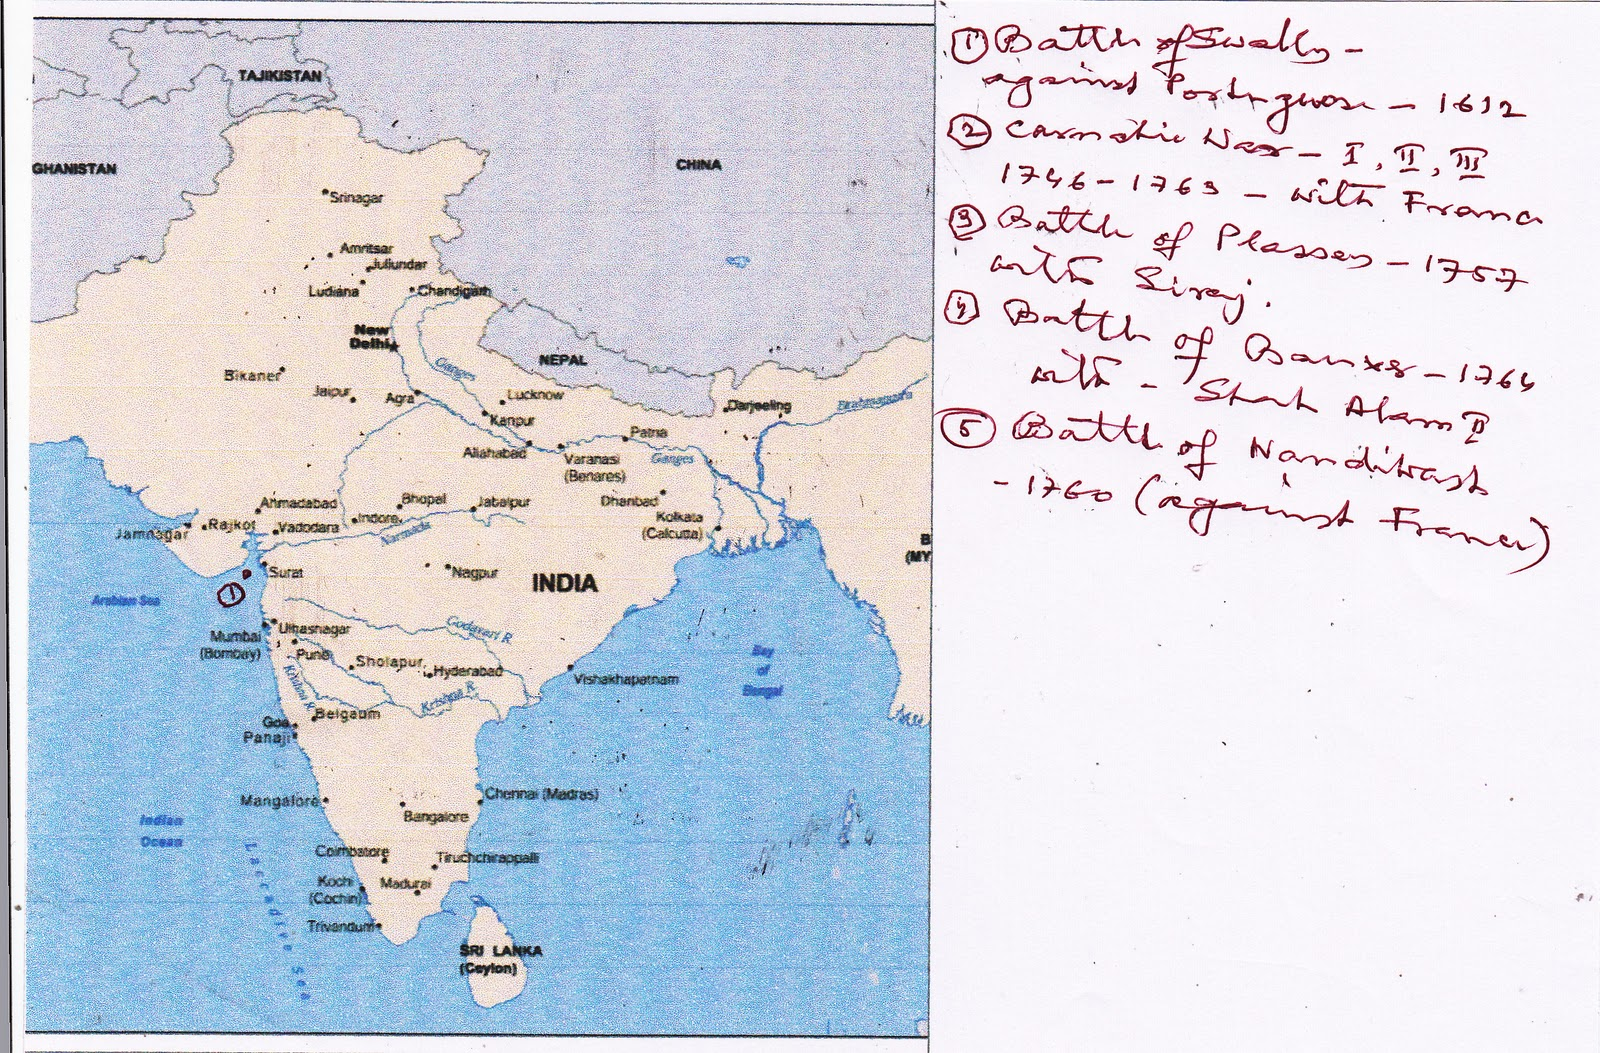 battles fought by british to gain over india